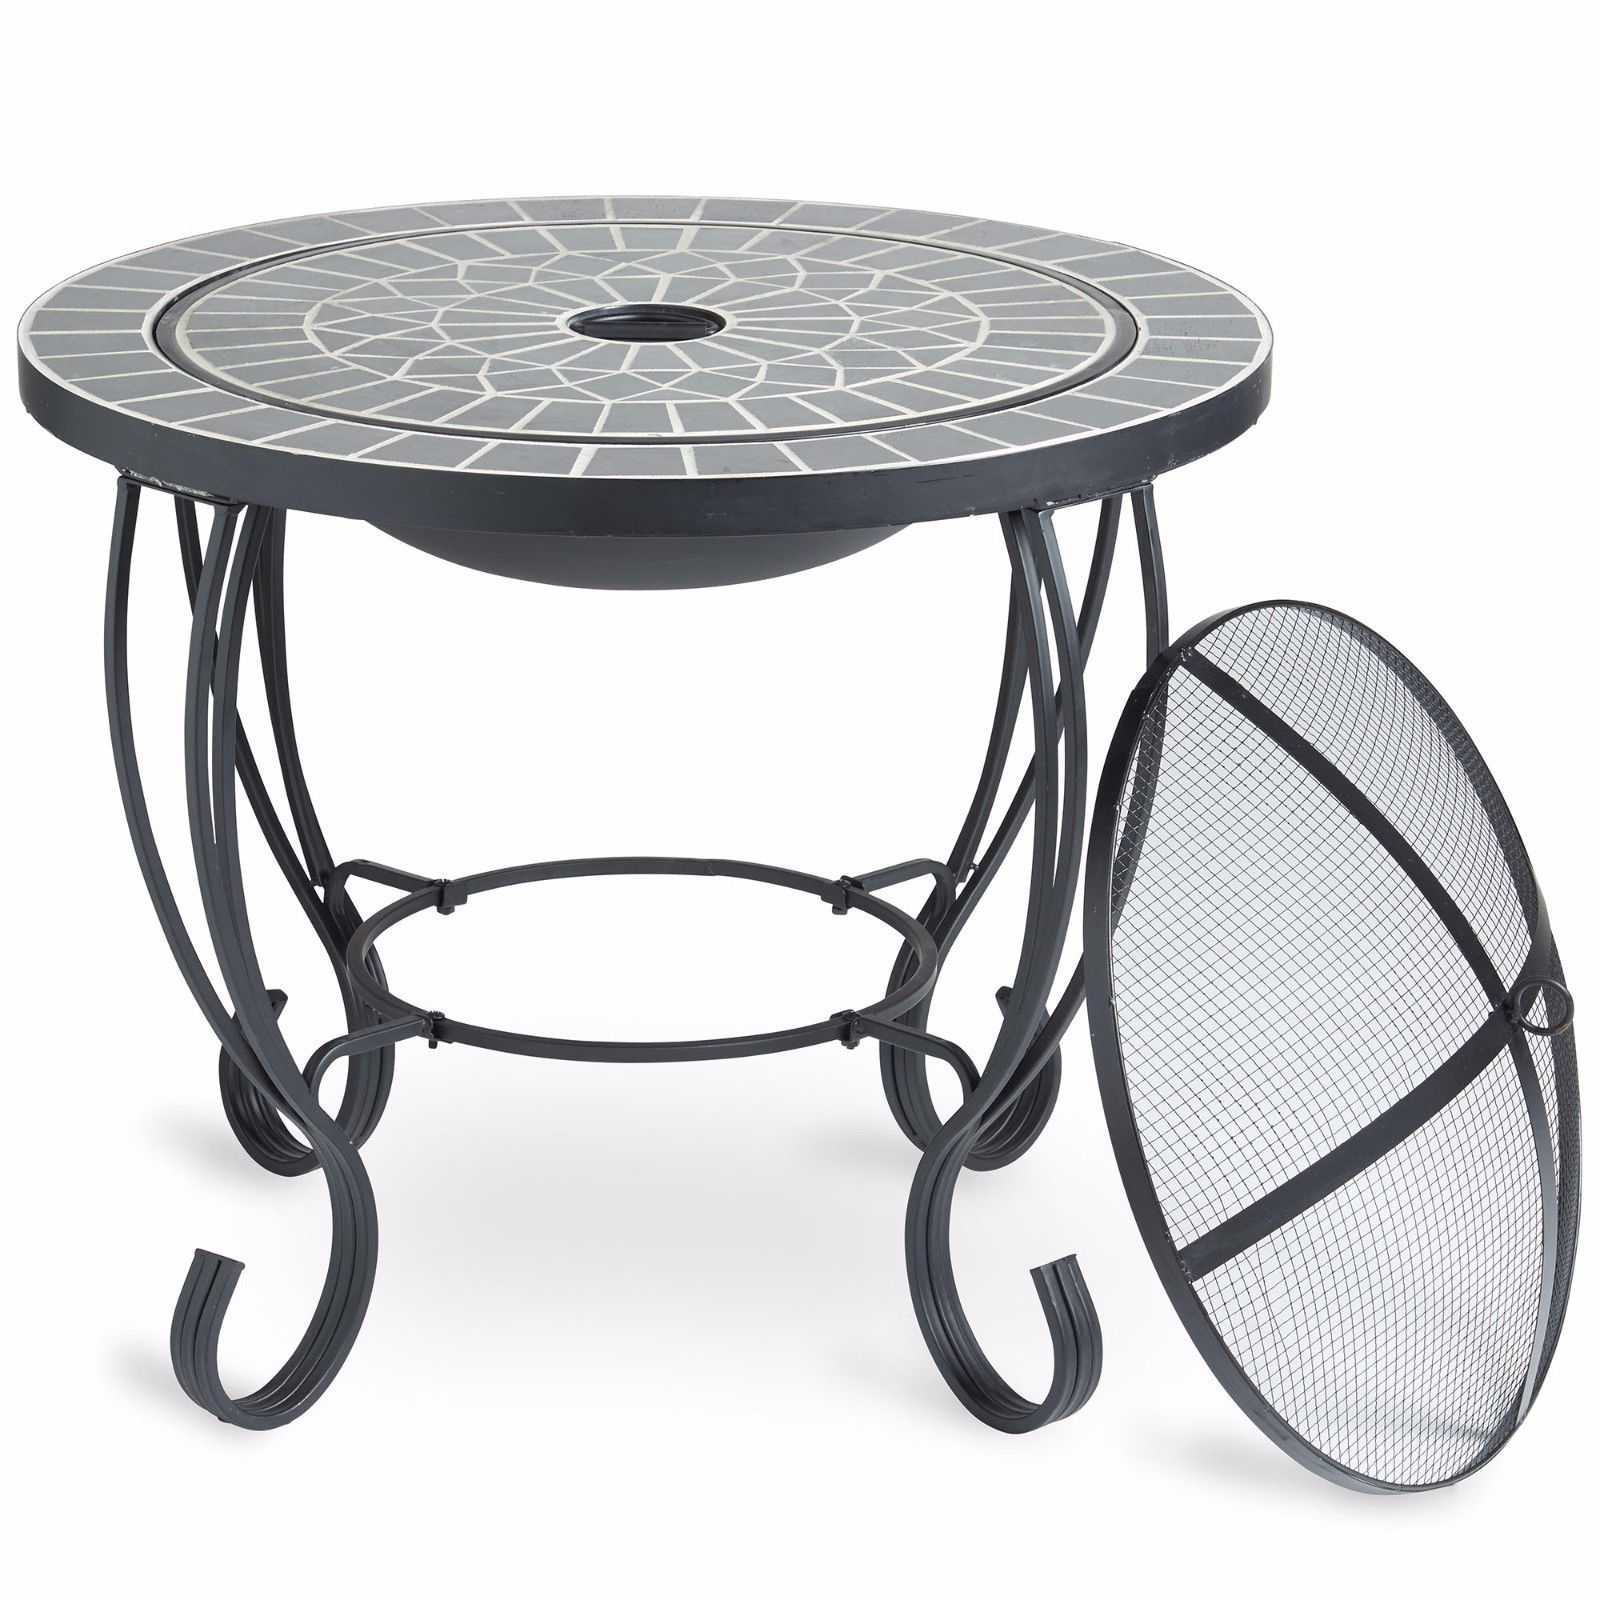 VonHaus Mosaic Fire Pit Coffee Table Garden Brazier BBQ ...